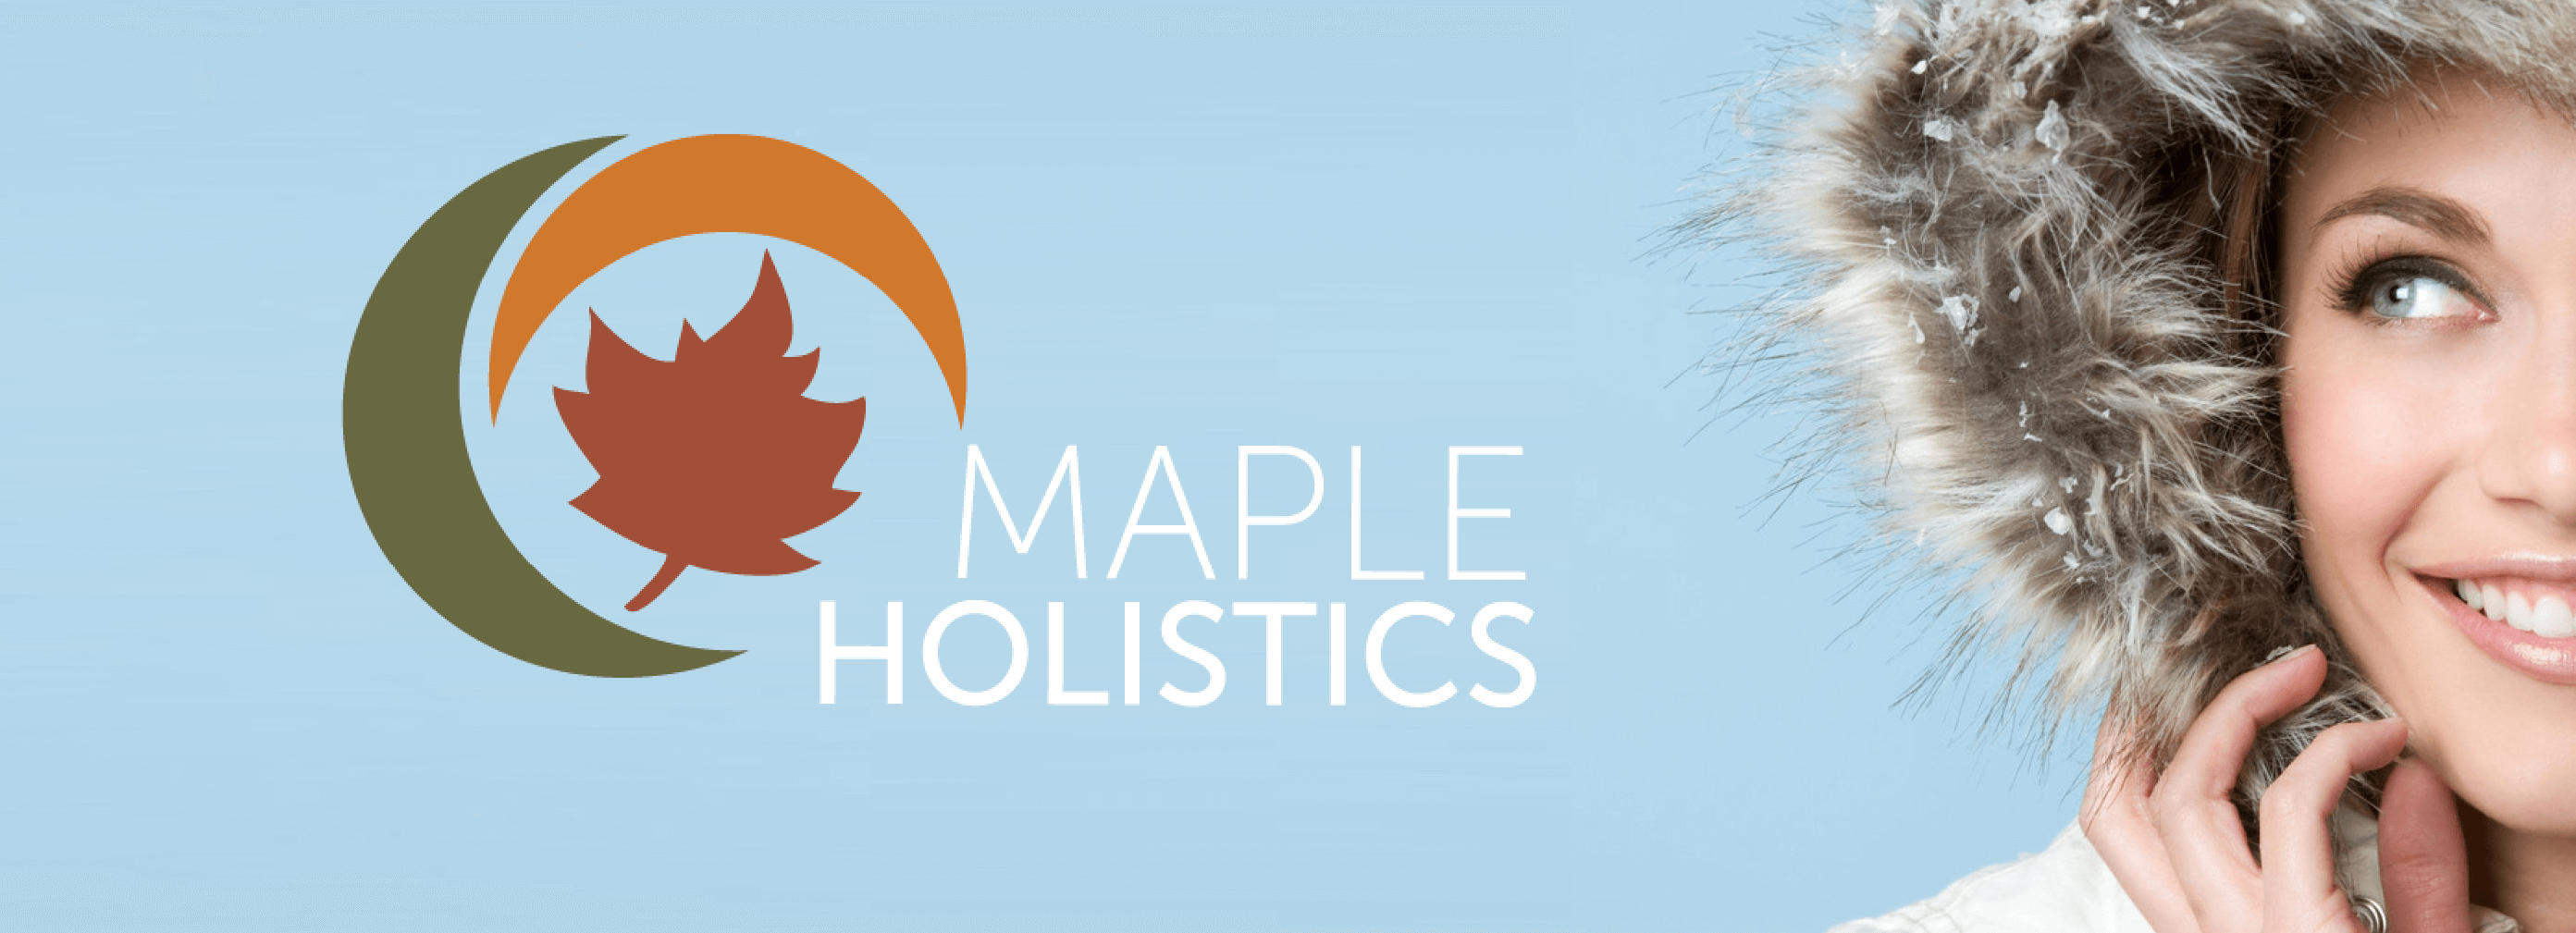 Maple Holistics advertisement with woman in winter coat.